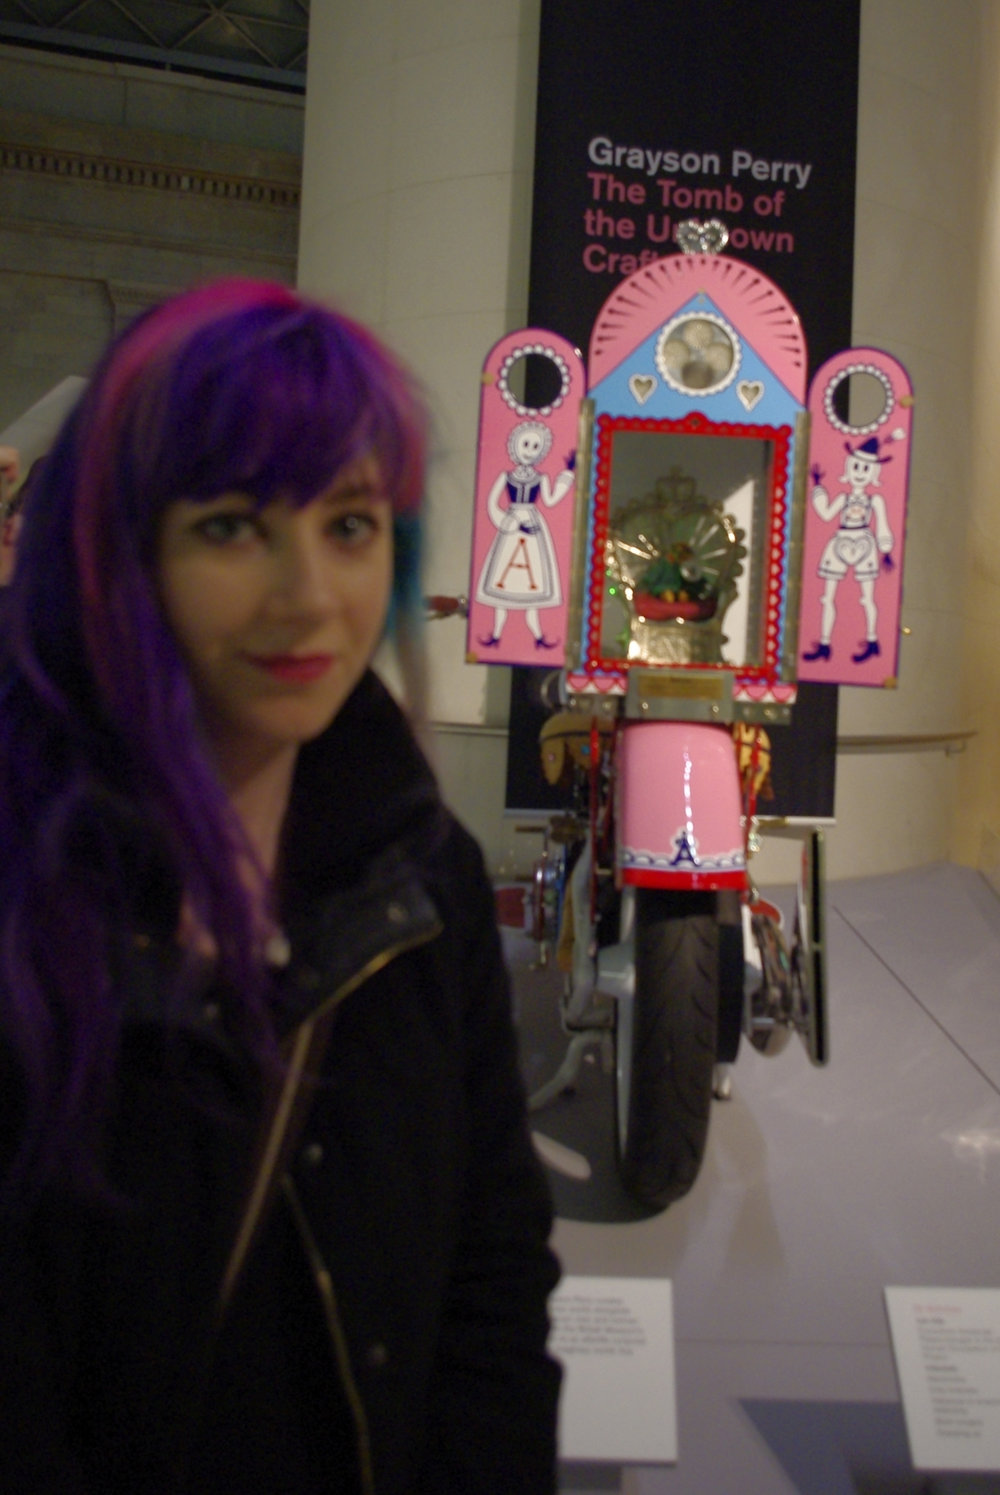 Me with Alan Measles the Teddybear in his motorbike shrine, outside Perrys show at the British Museum in 2011, looking worn out from London antics.